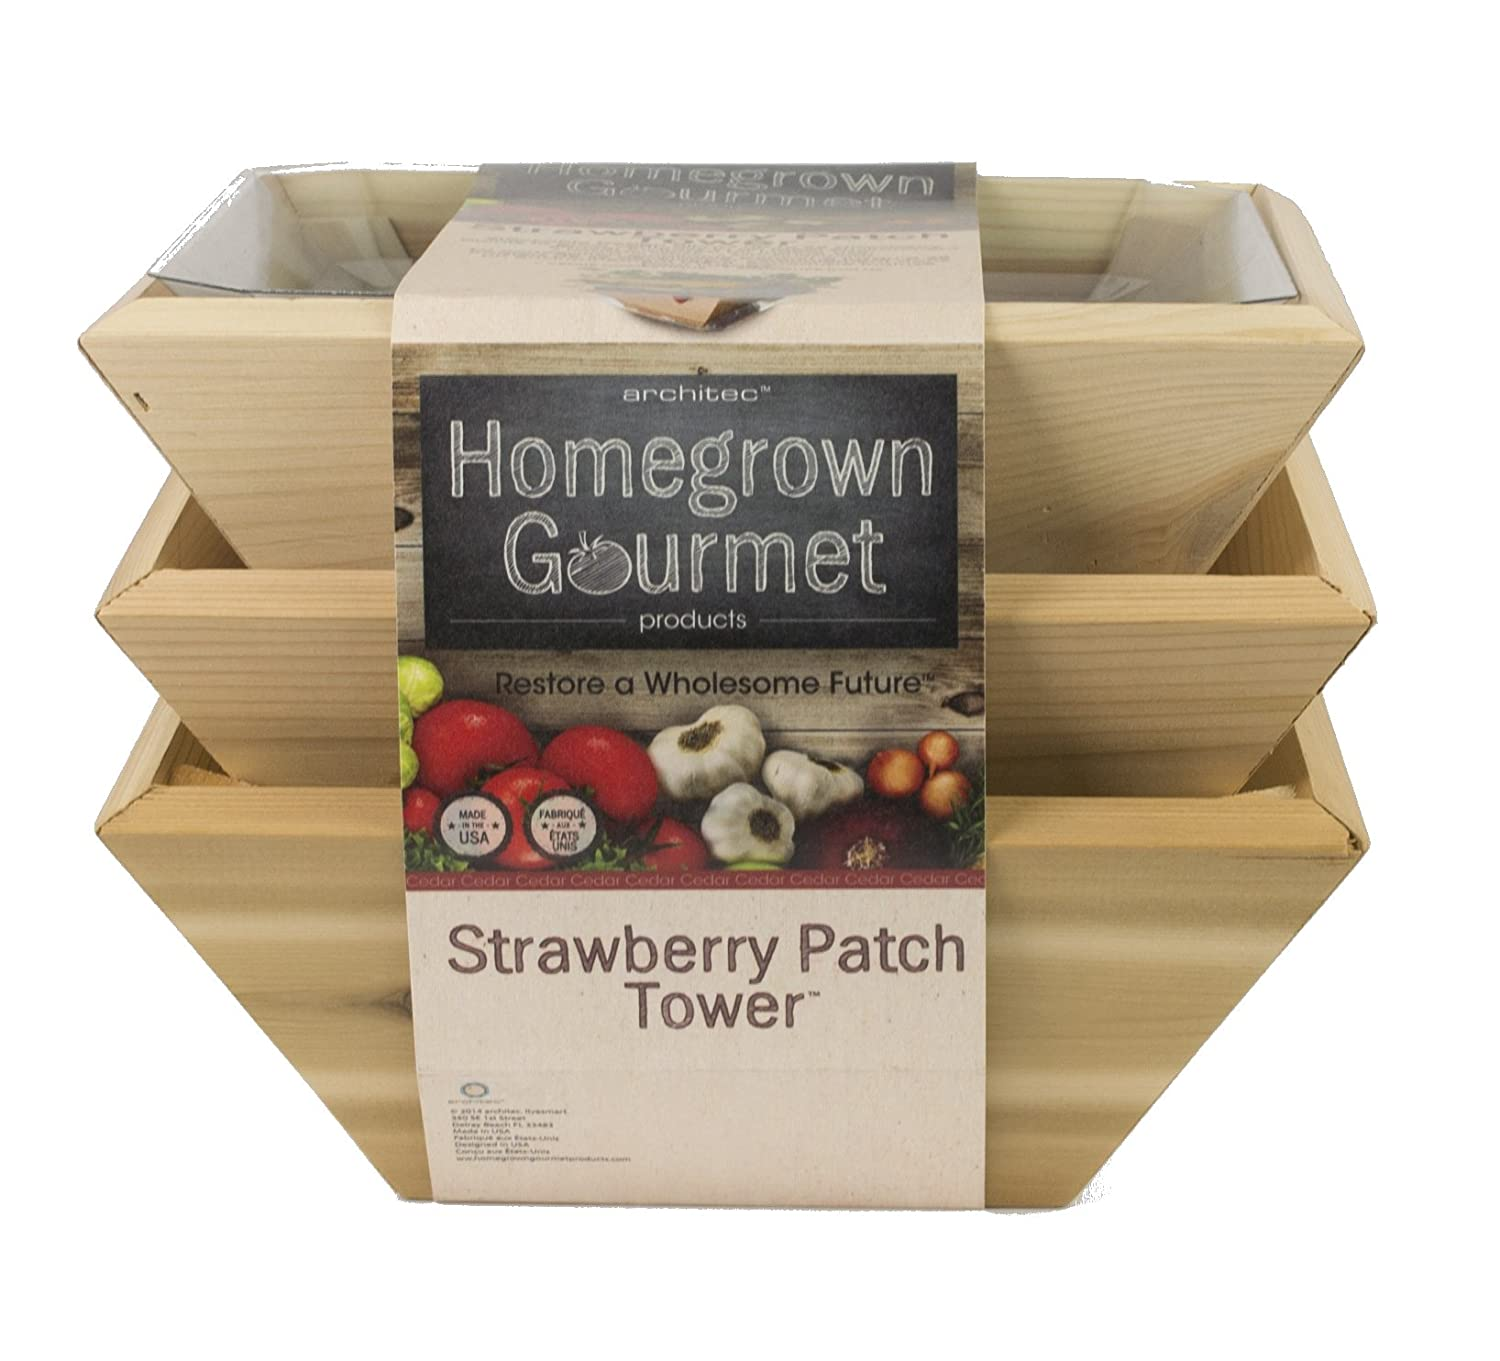 Architec Homegrown Gourmet Strawberry Patch Tower Cedar Planter Box, Set of 3